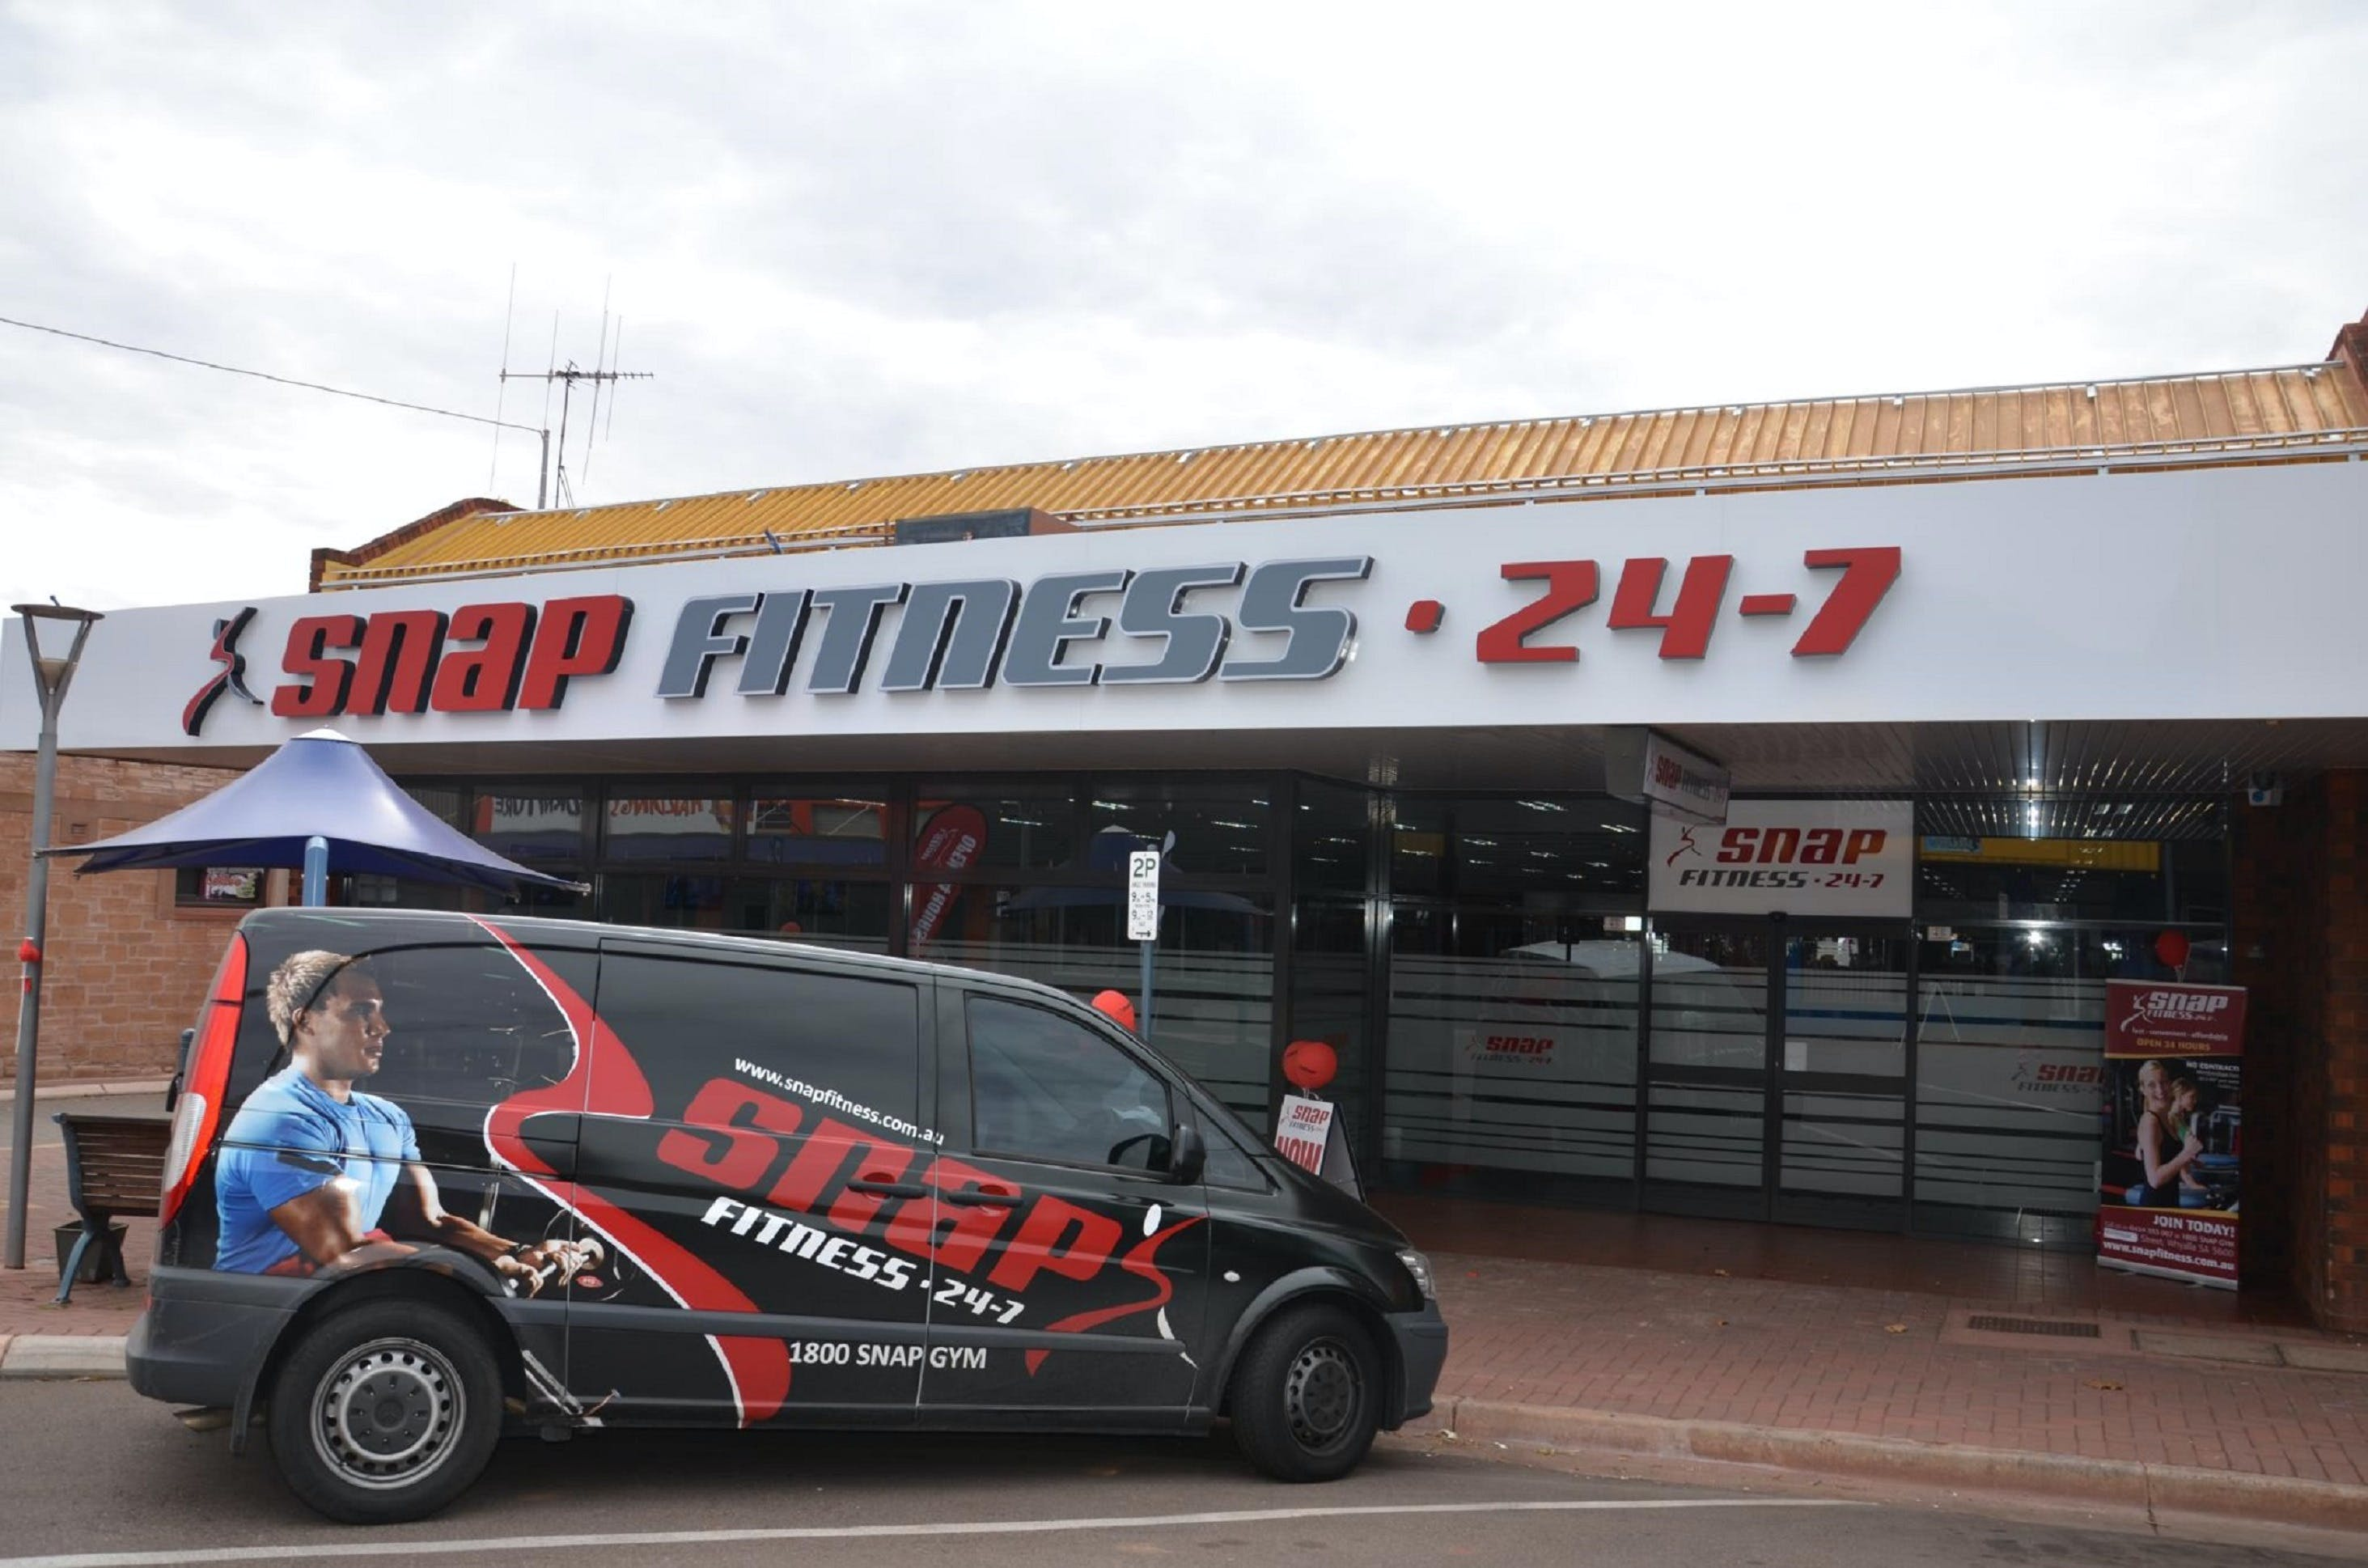 Snap Fitness Whyalla 24/7 gym - Accommodation Airlie Beach